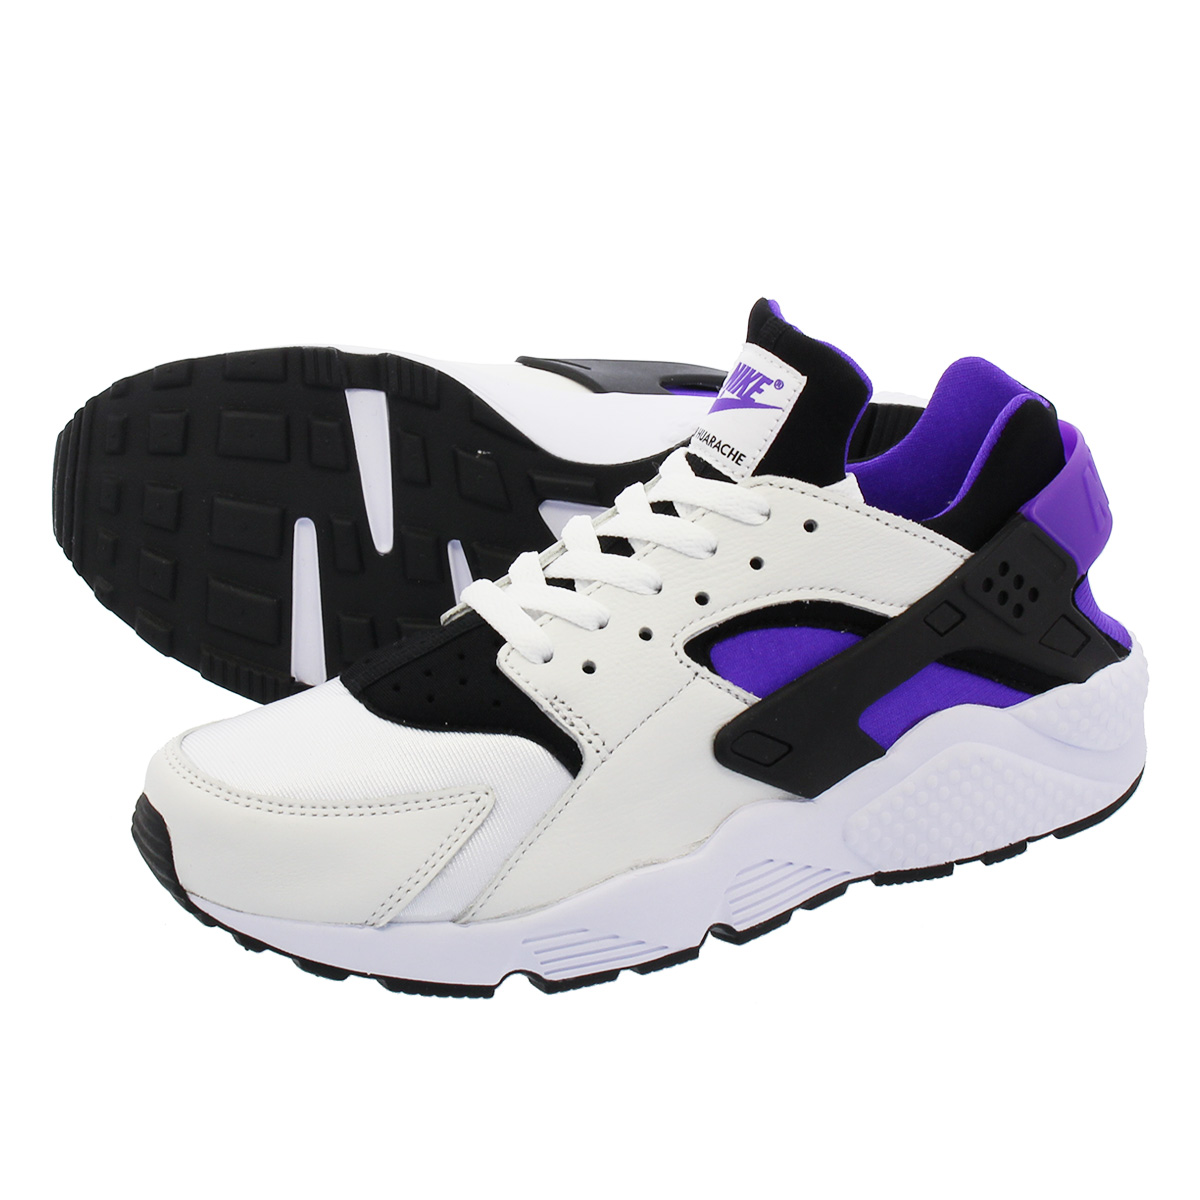 1645e3e68757 NIKE AIR HUARACHE RUN  91 QS ナイキエアハラチラン 91 QS BLACK PURPLE PUNCH BLACK WHITE  ah8049-001